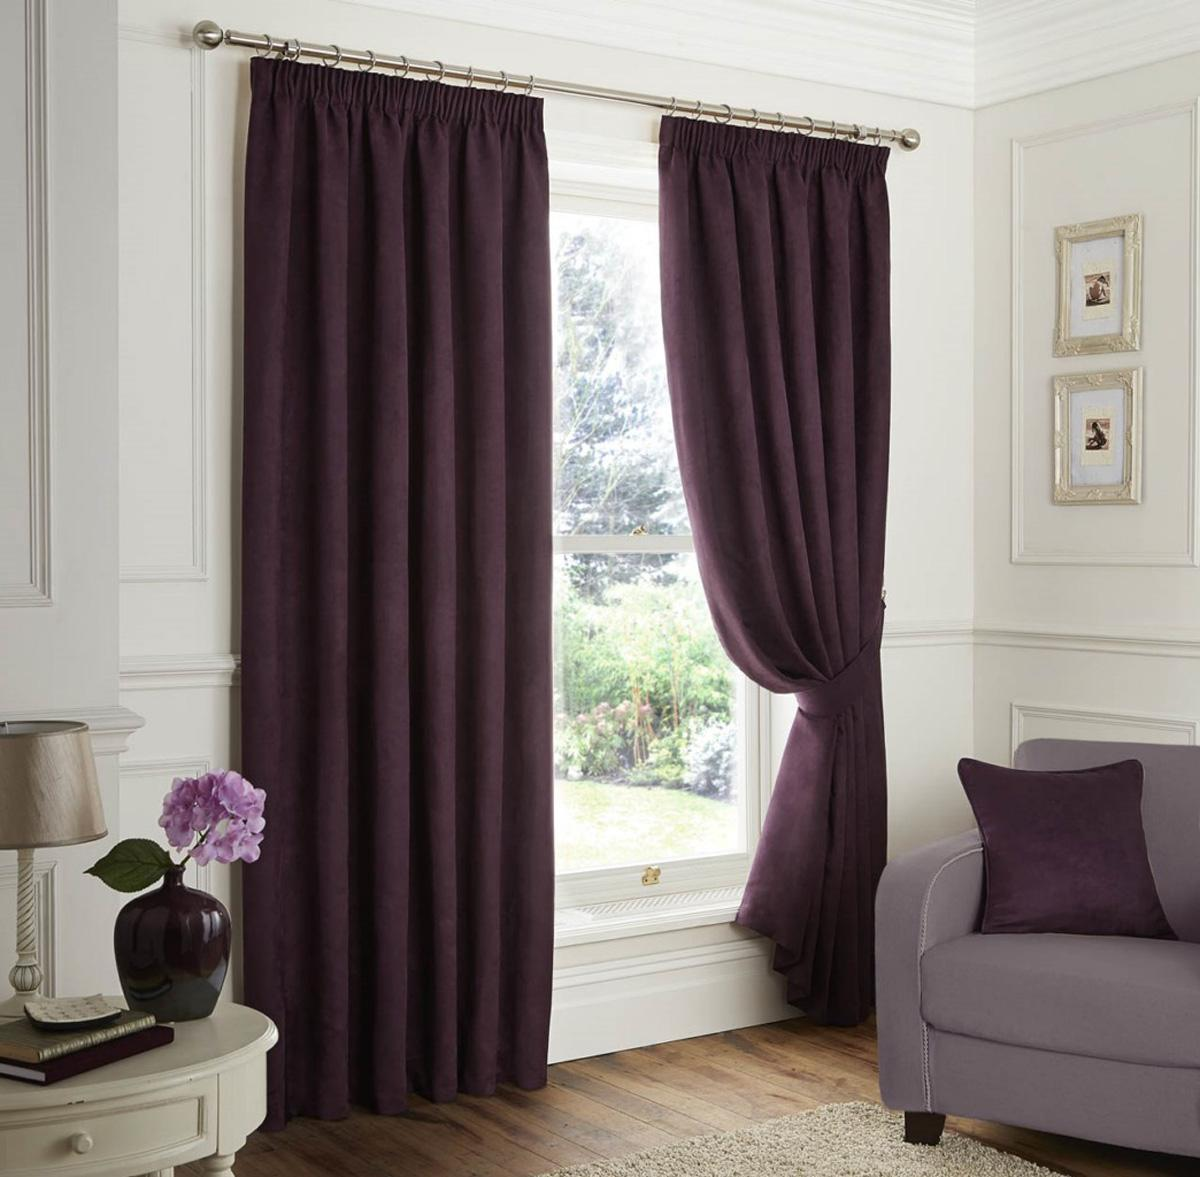 Stockists of Plum Faux Suede Ready Made Lined Curtains